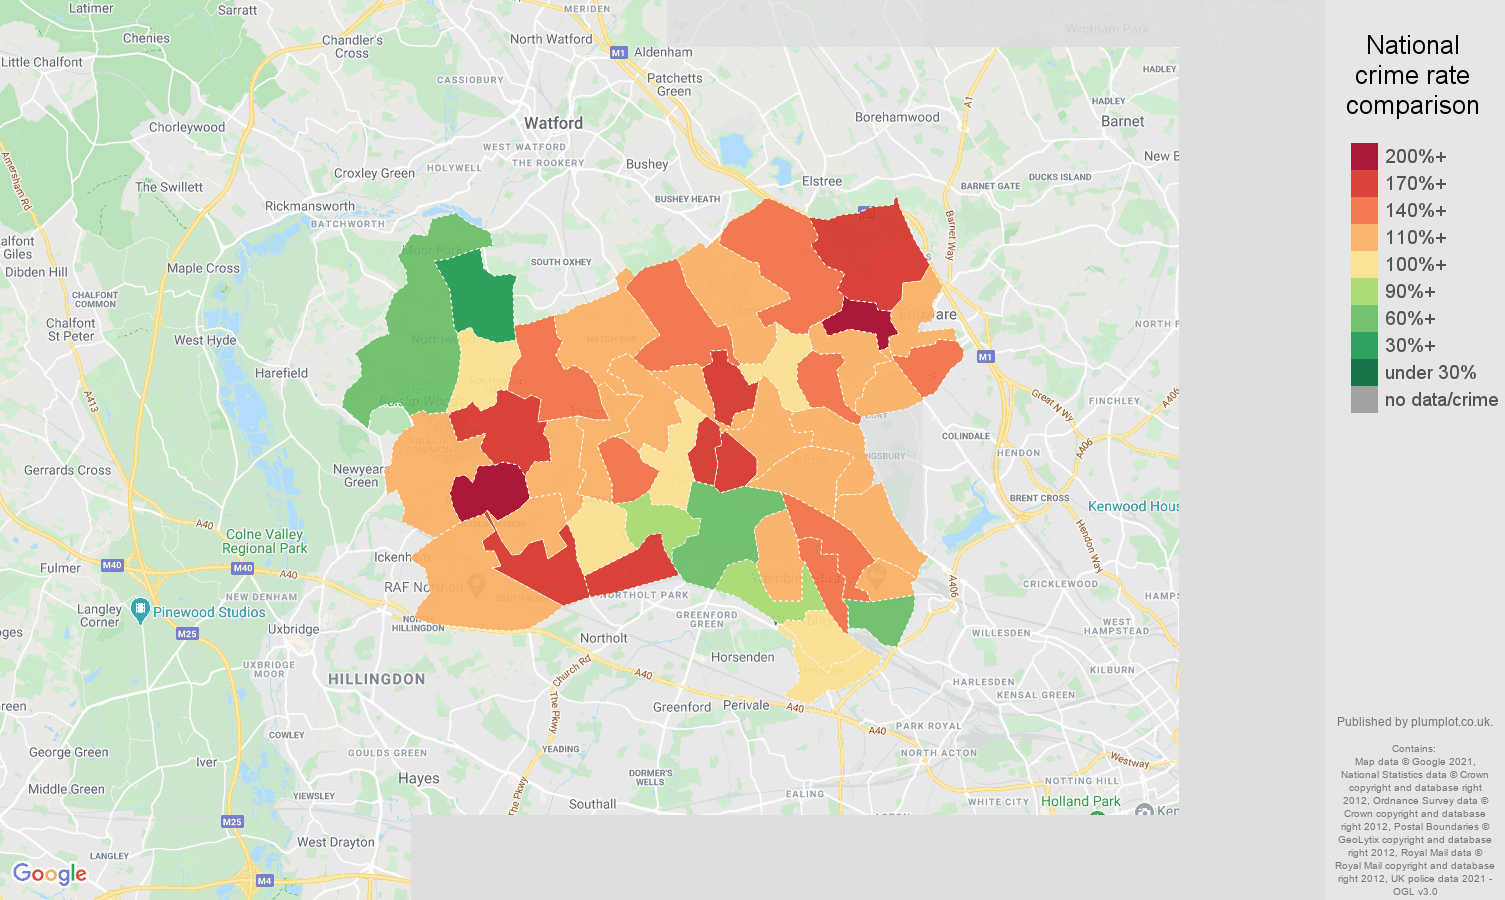 Harrow burglary crime rate comparison map